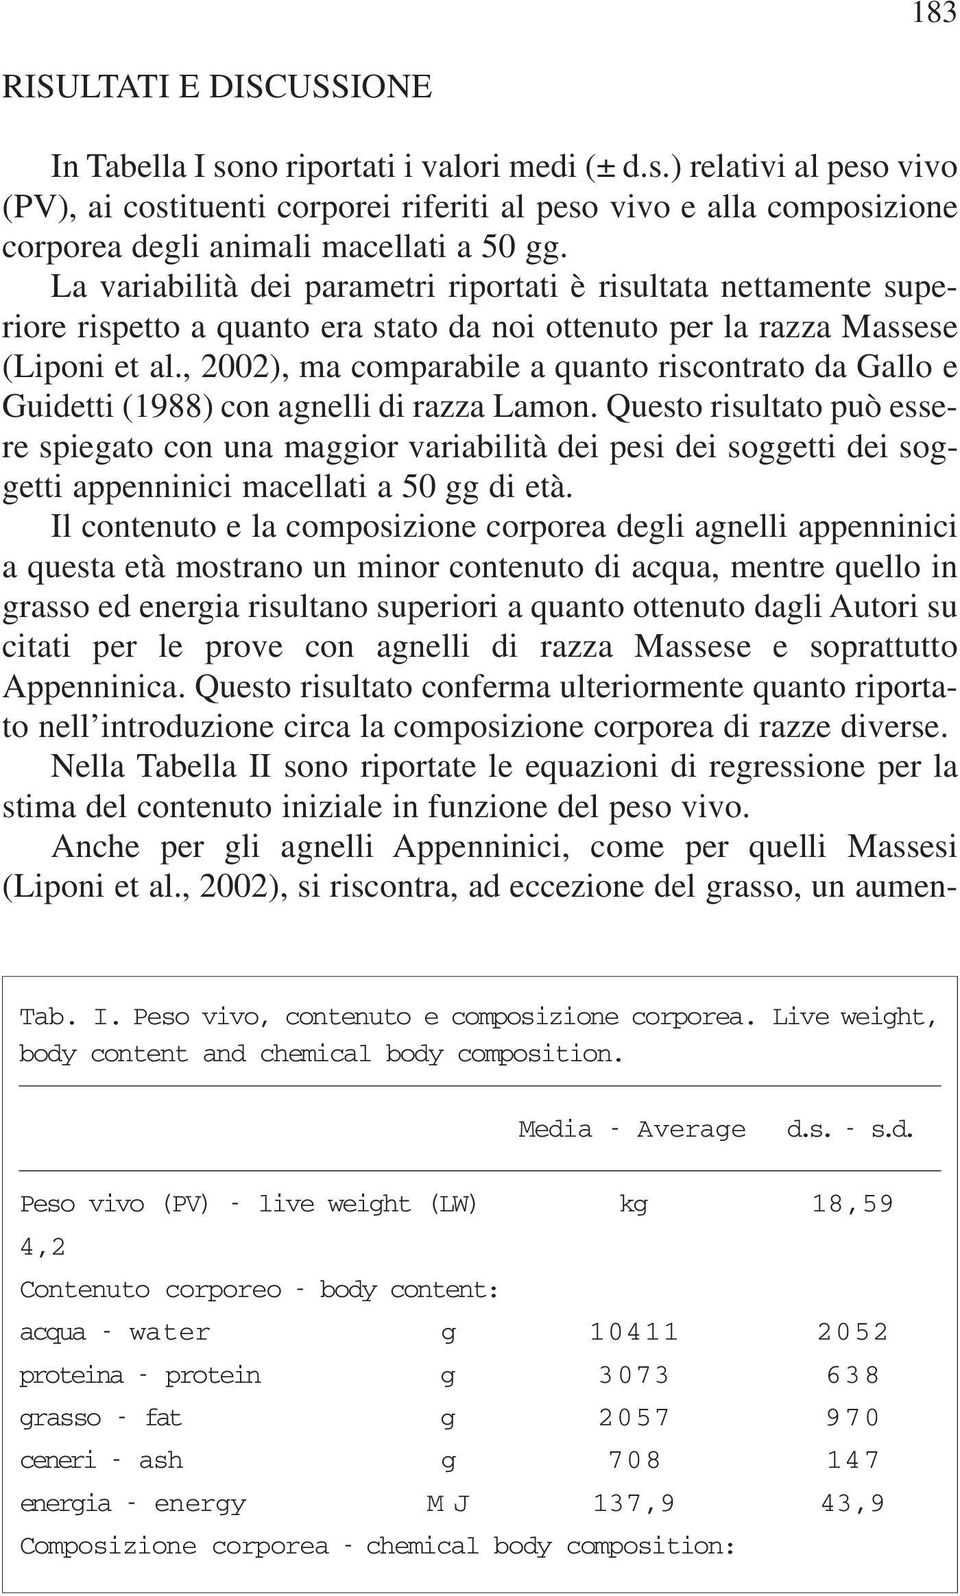 , 2002), ma comparabile a quanto riscontrato da Gallo e Guidetti (1988) con agnelli di razza Lamon.